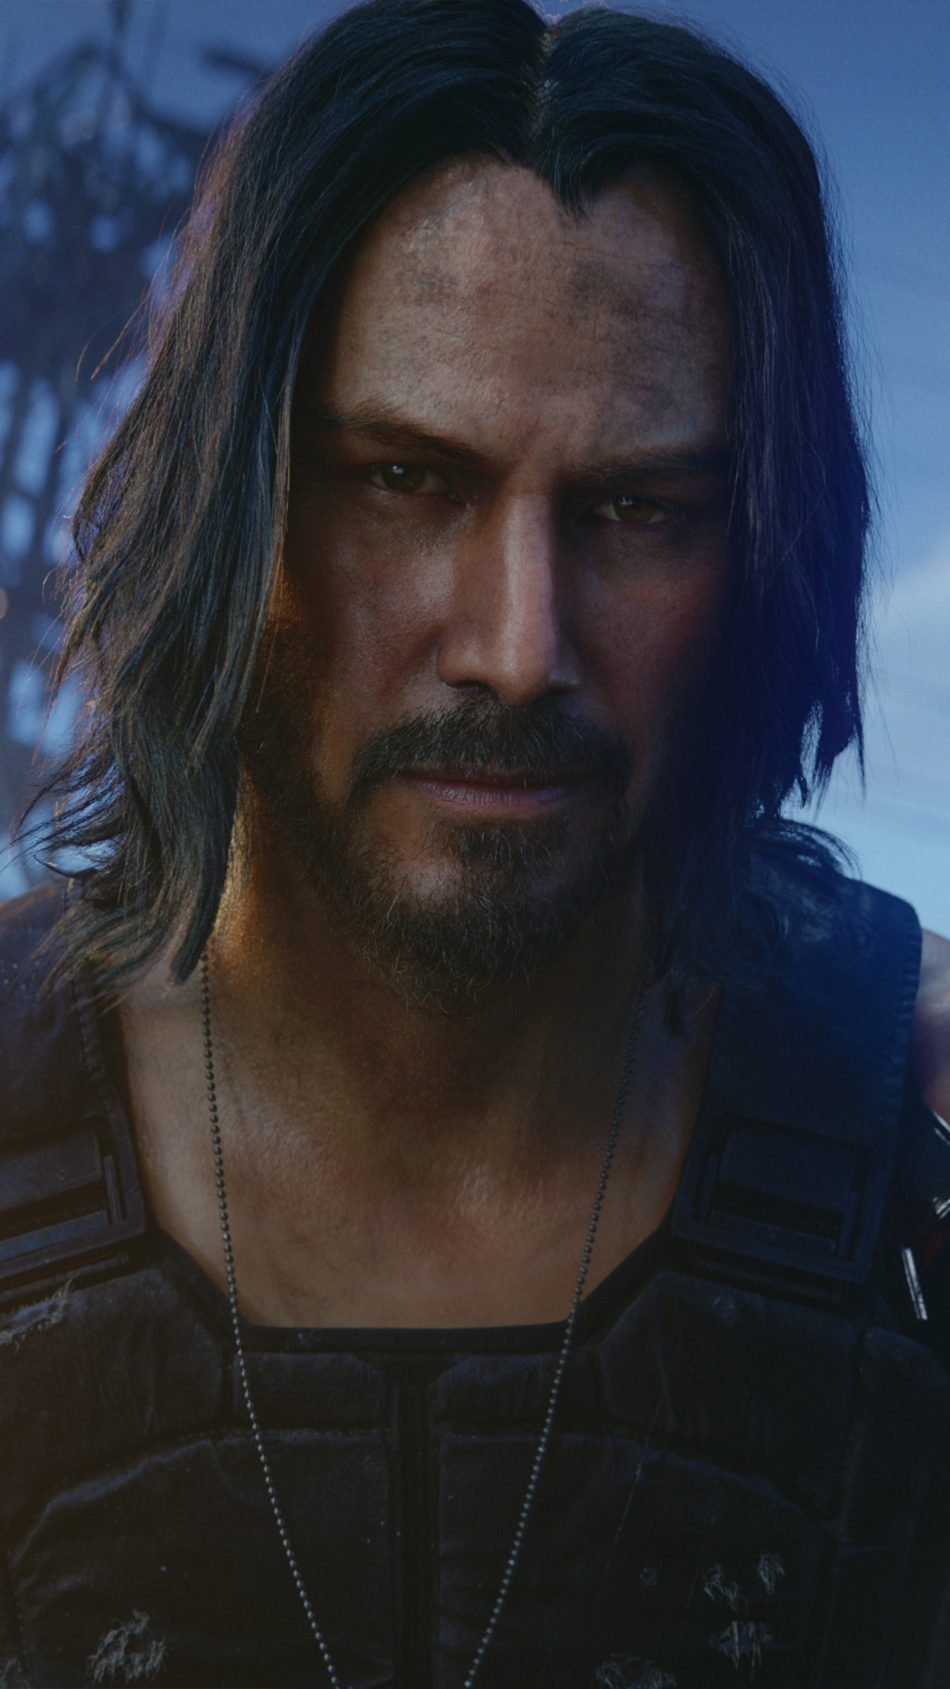 Keanu Reeves Cyberpunk 2077 4K Ultra HD Mobile Wallpaper